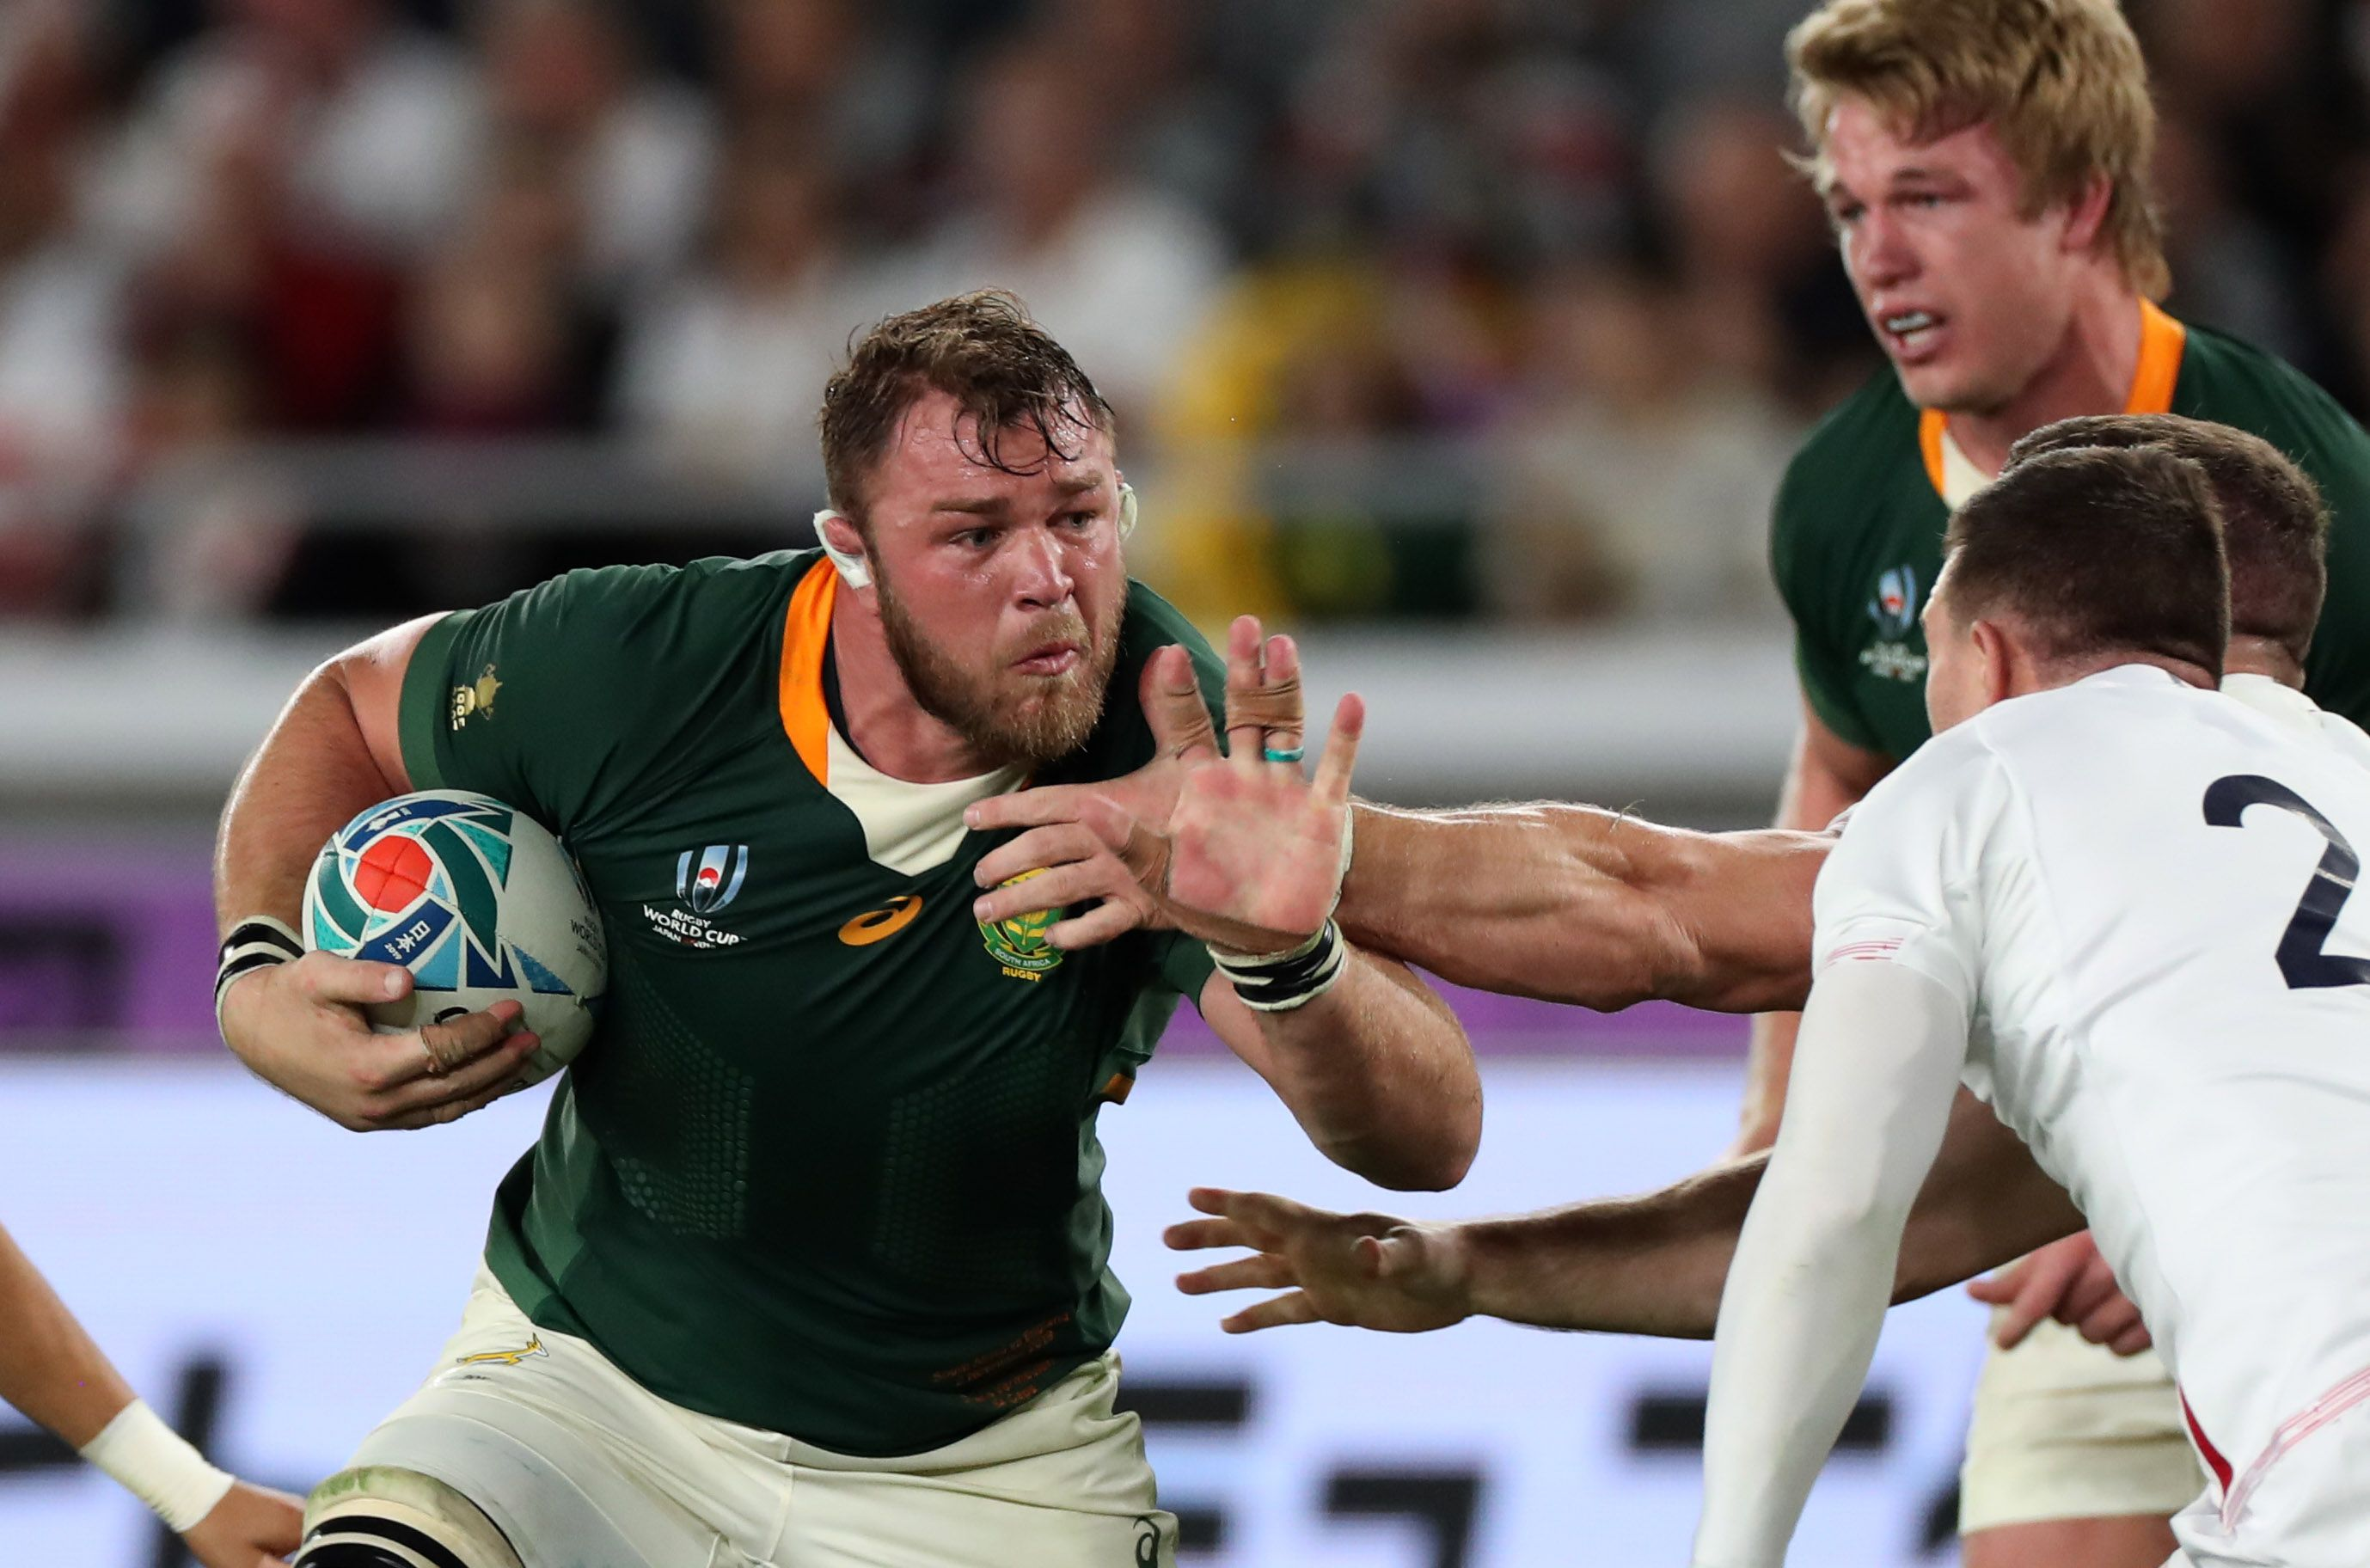 Duane Vermeulen for South Africa during the 2019 World Cup final